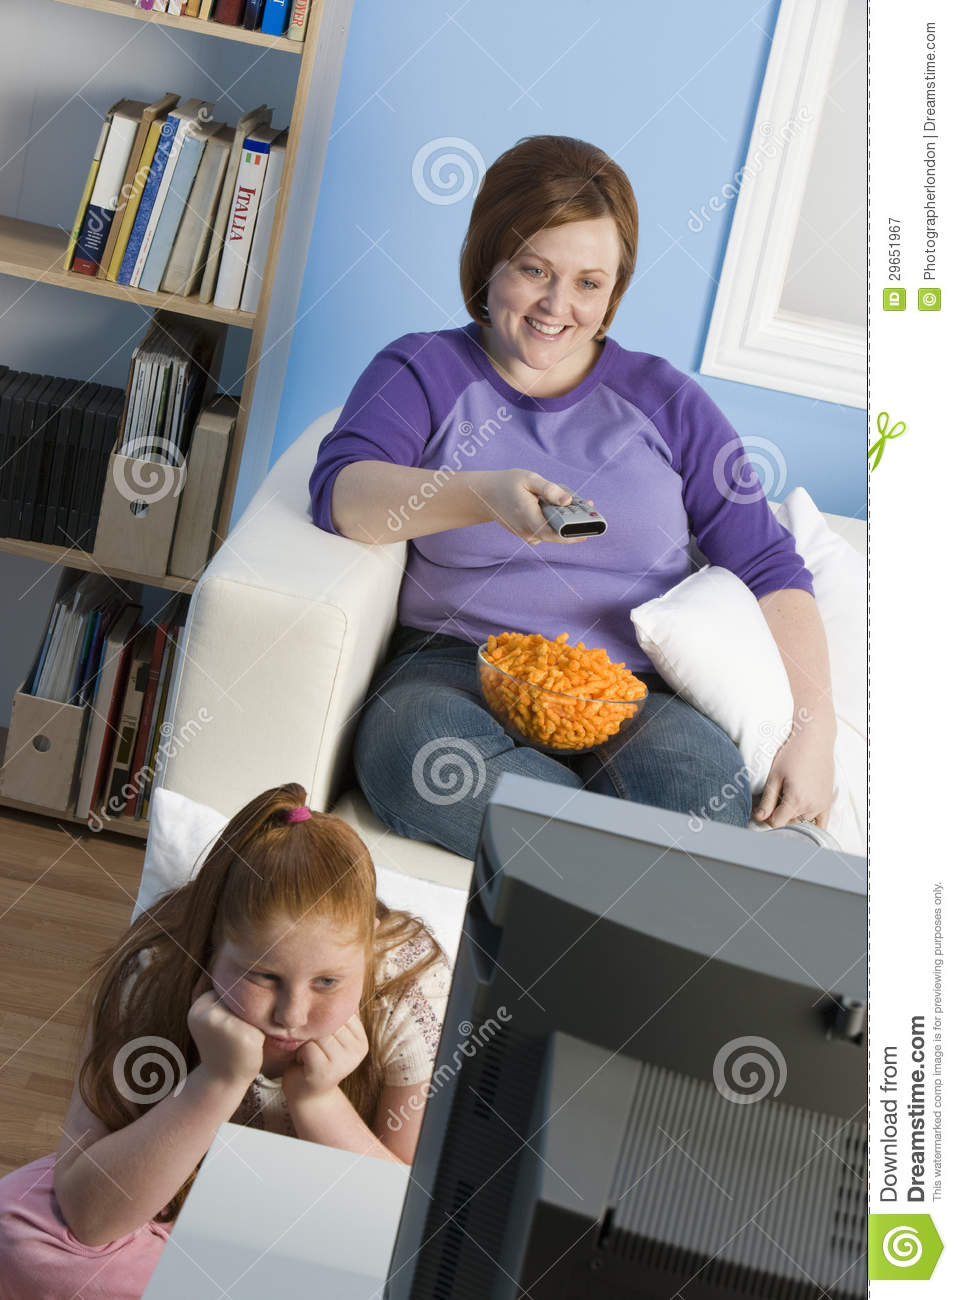 Watch Mom In Bedroom Camera: Mother And Daughter Watching Television Stock Image